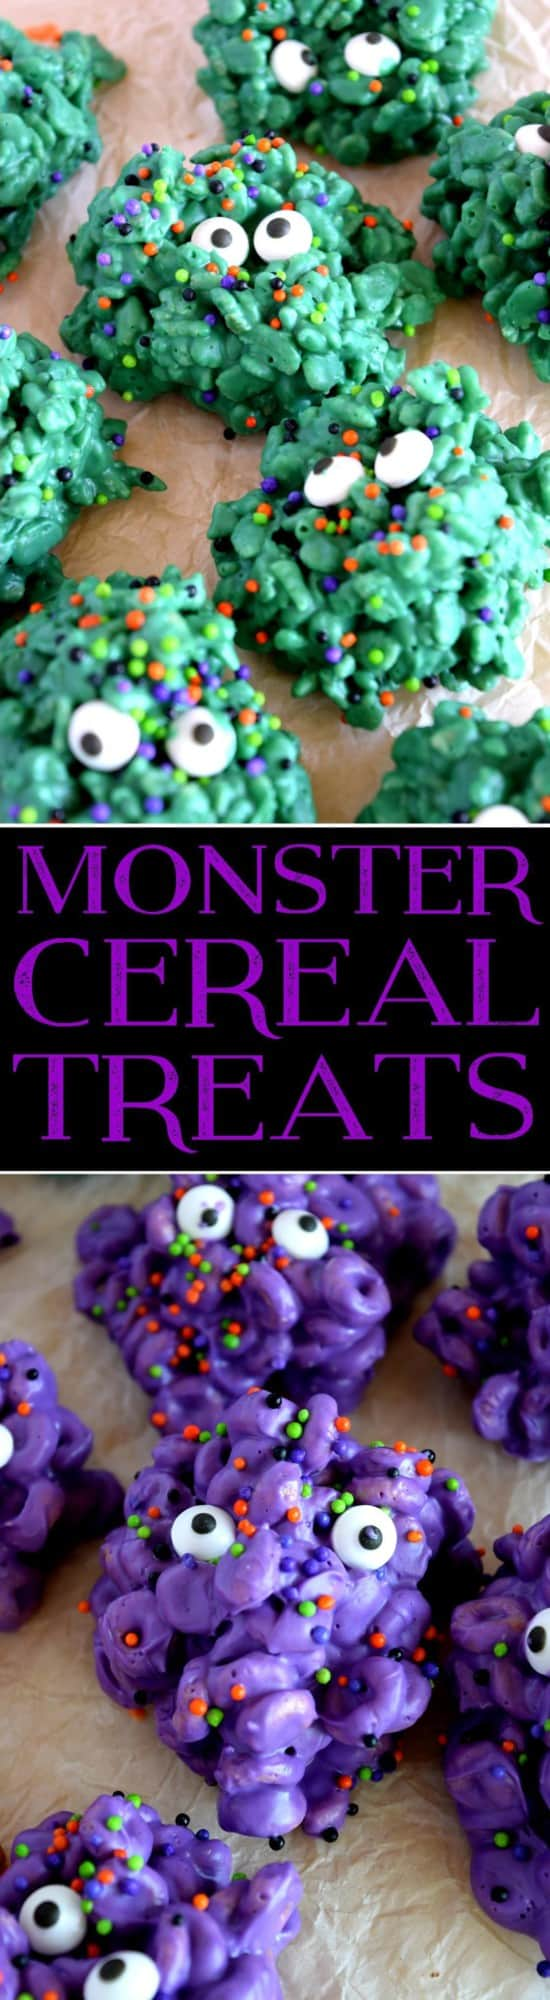 monster-cereal-treats